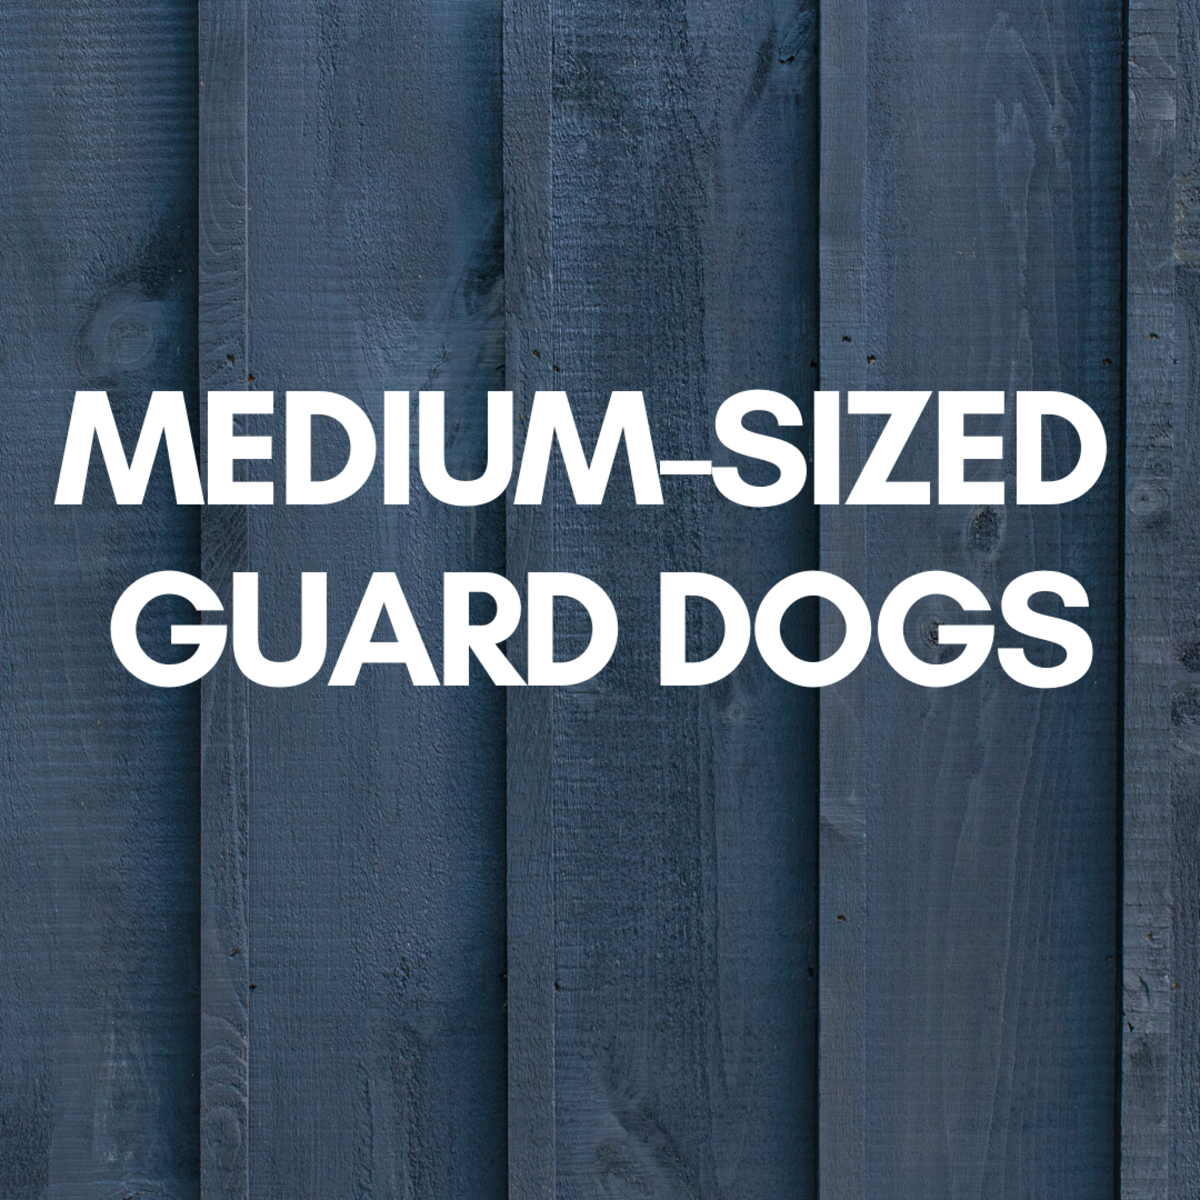 What About a Medium-Sized Guard Dog?